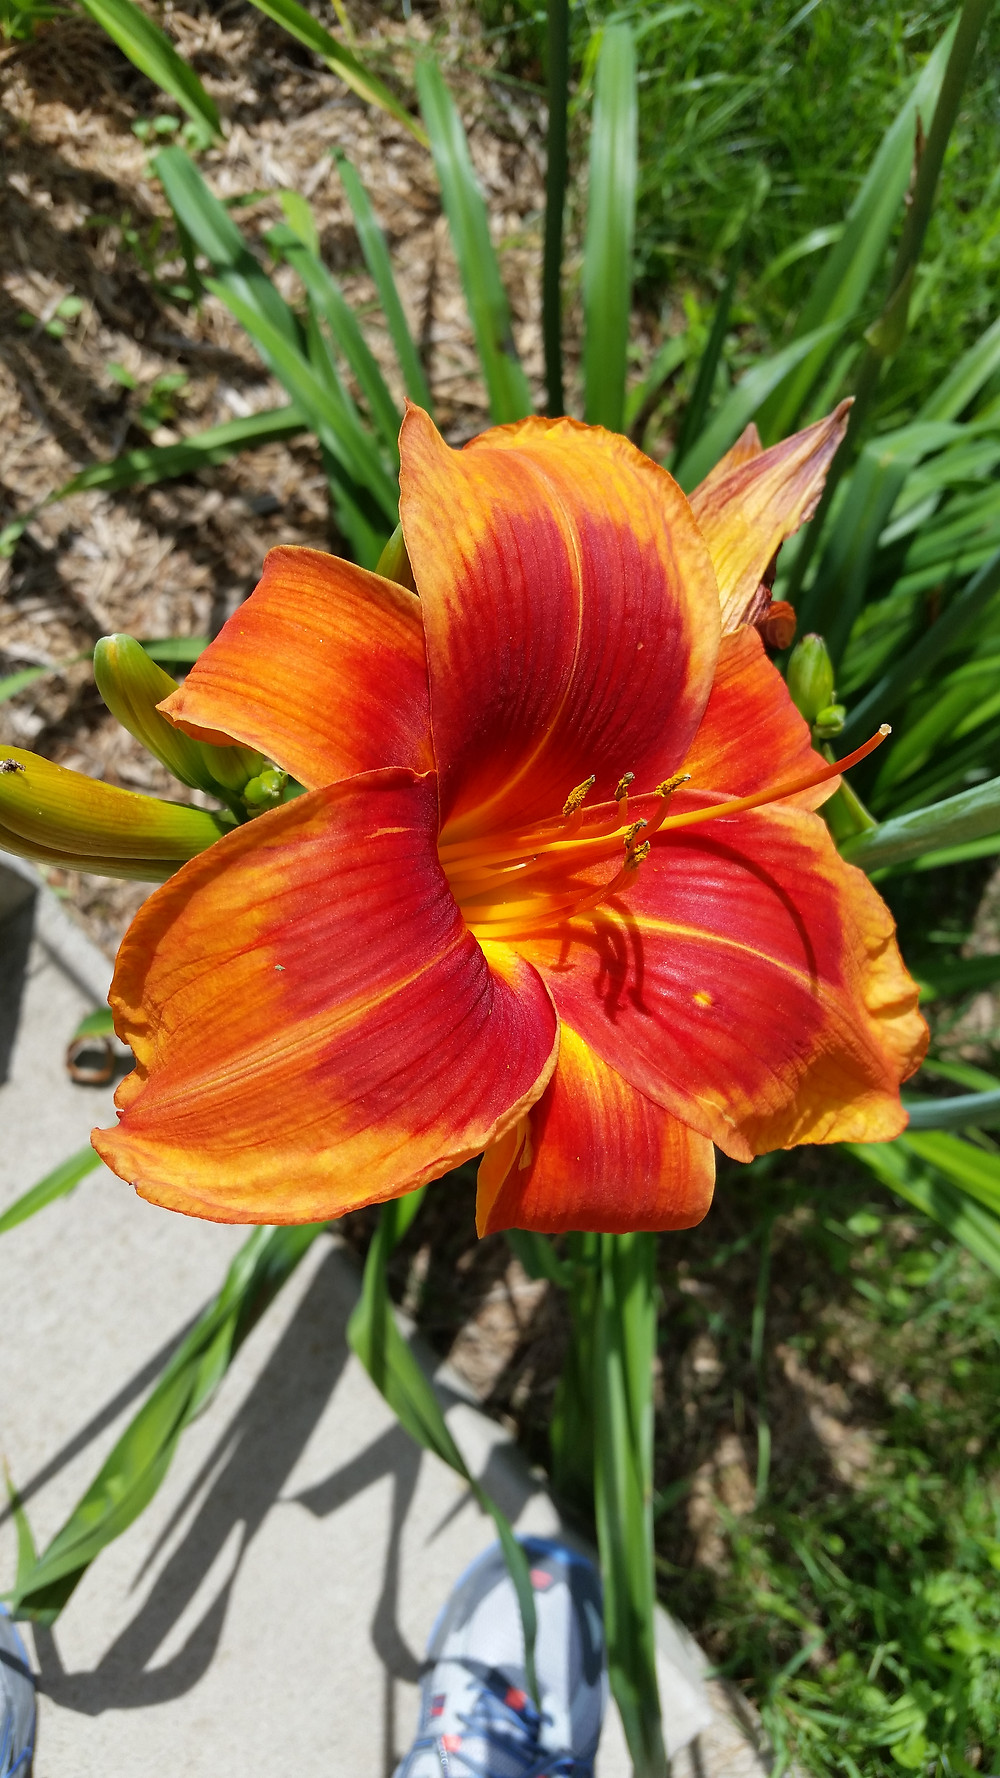 The daylillies in the yard were really nice this year!